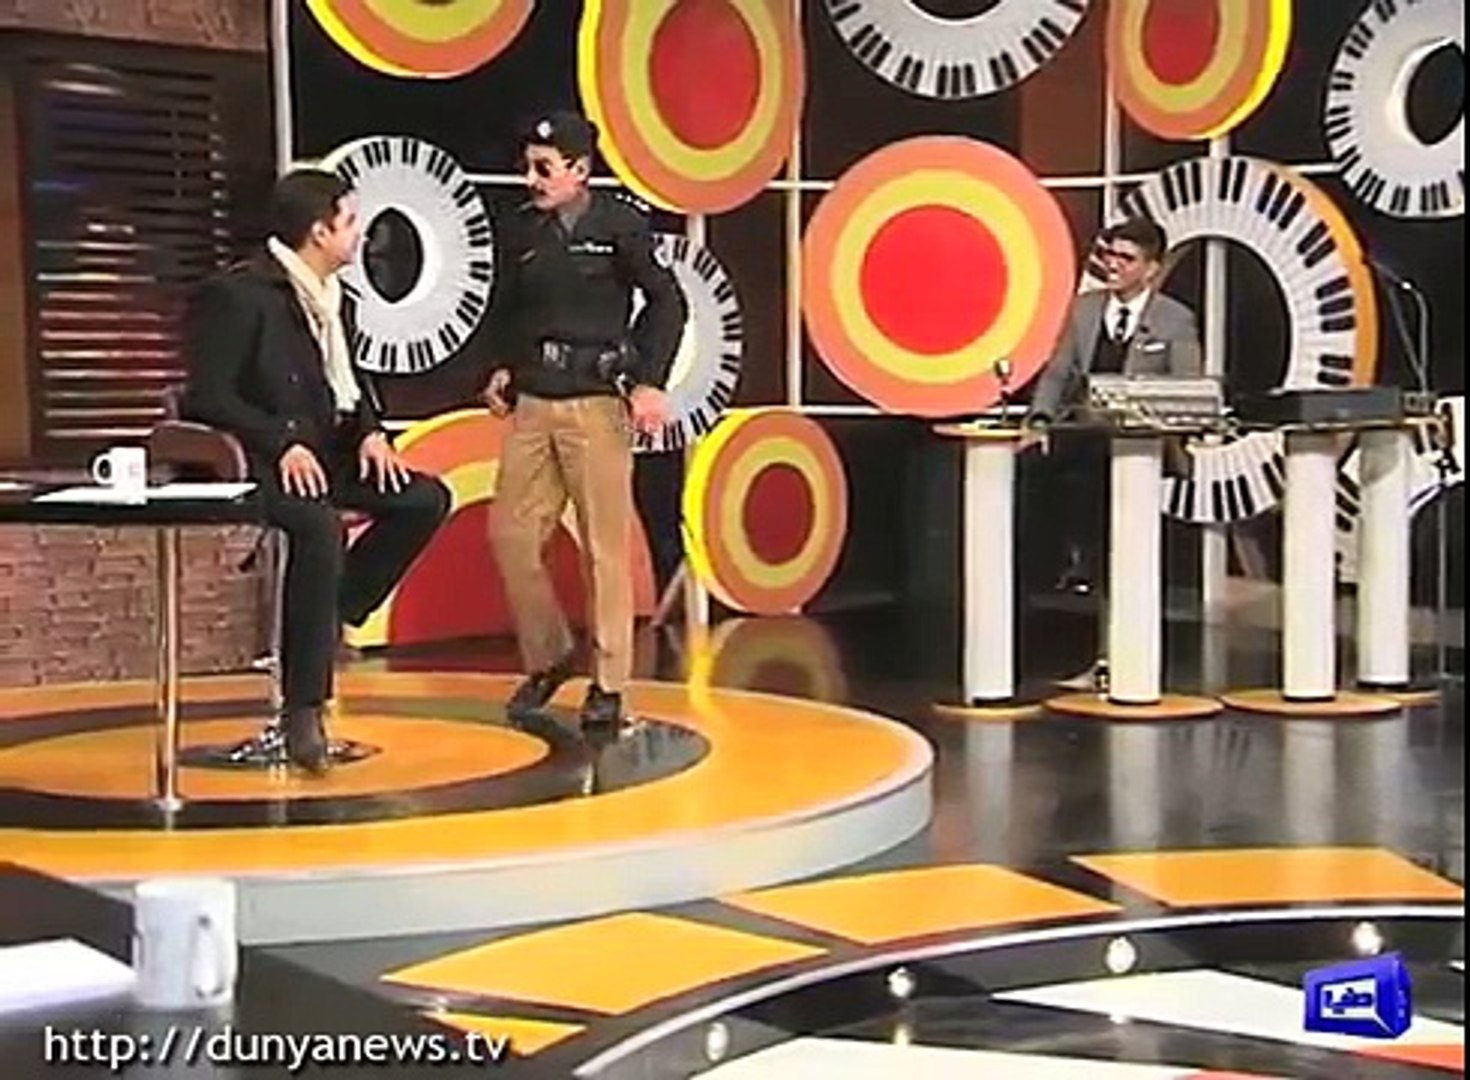 v v  v v  v v  v v  v funny video from mazaaq raat